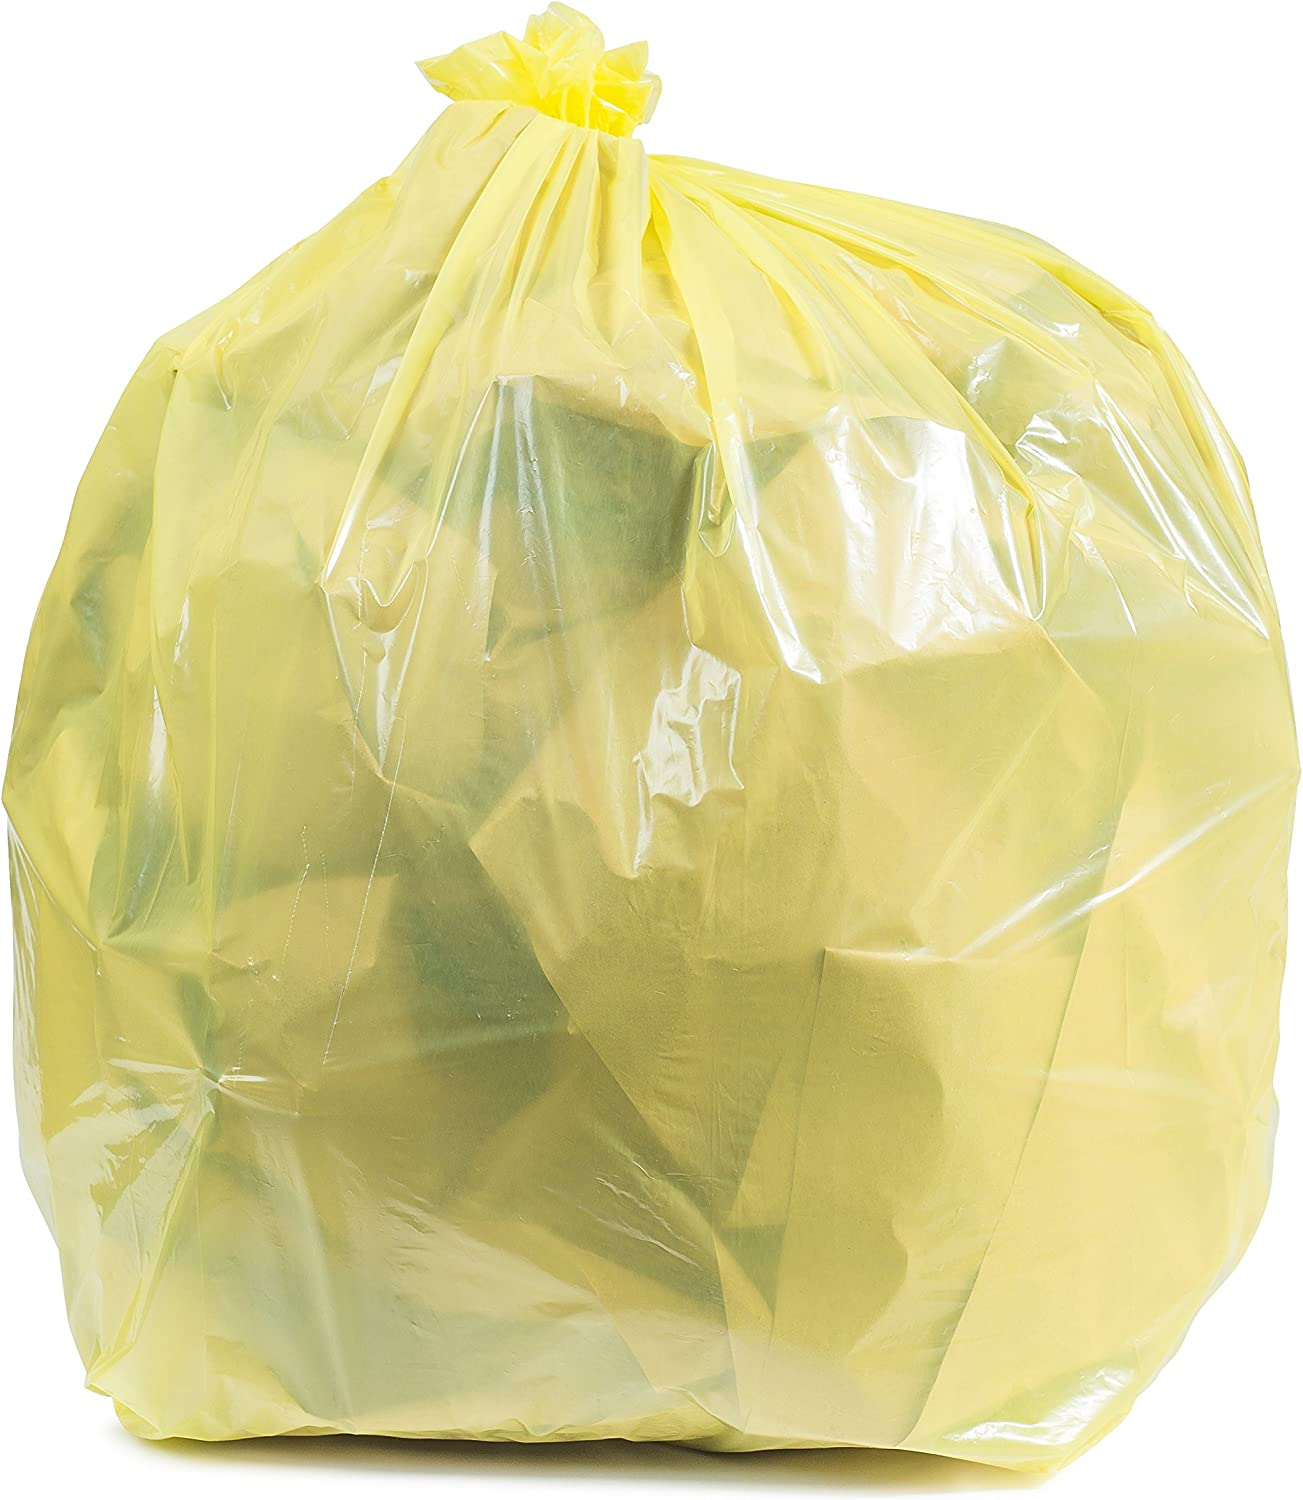 "Plasticplace 64-65 Gallon Trash Can Liners for Toter ¦ 1.5 Mil ¦ Yellow Heavy Duty Garbage Bags ¦ 50"" x 60"" (50 Count) (W65LDYTL)"